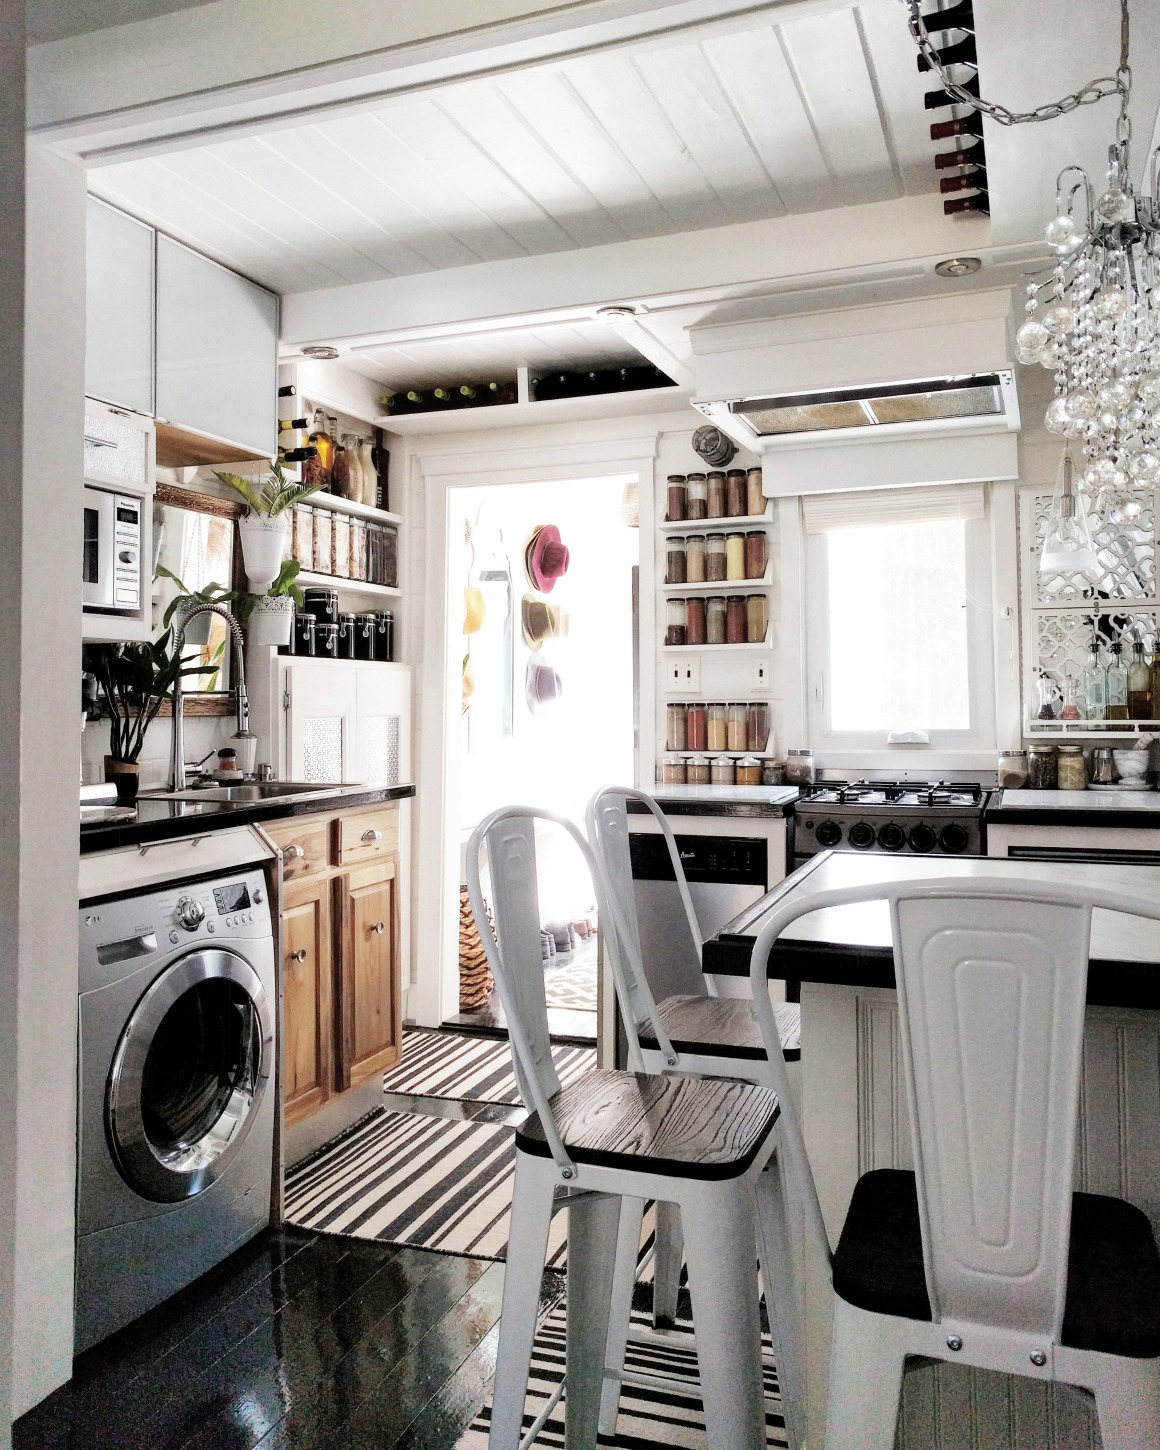 Small Space Living Series- 800 Square Foot Home